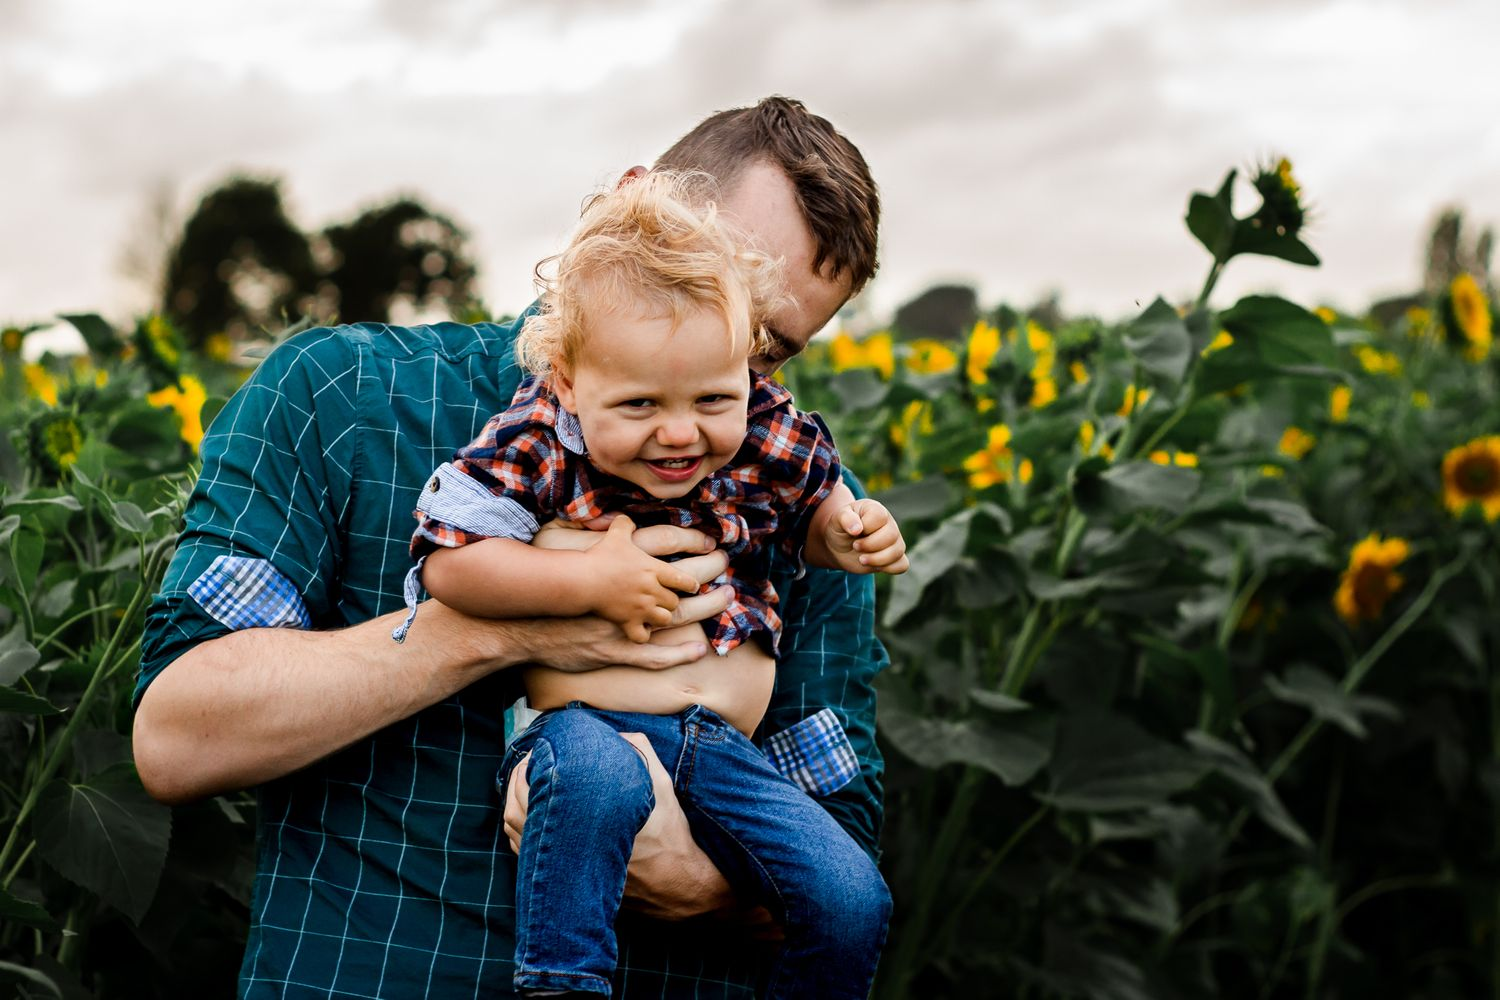 On and overcast day In a sunflower field on Hayling Island a dad tickles his one year old Son.